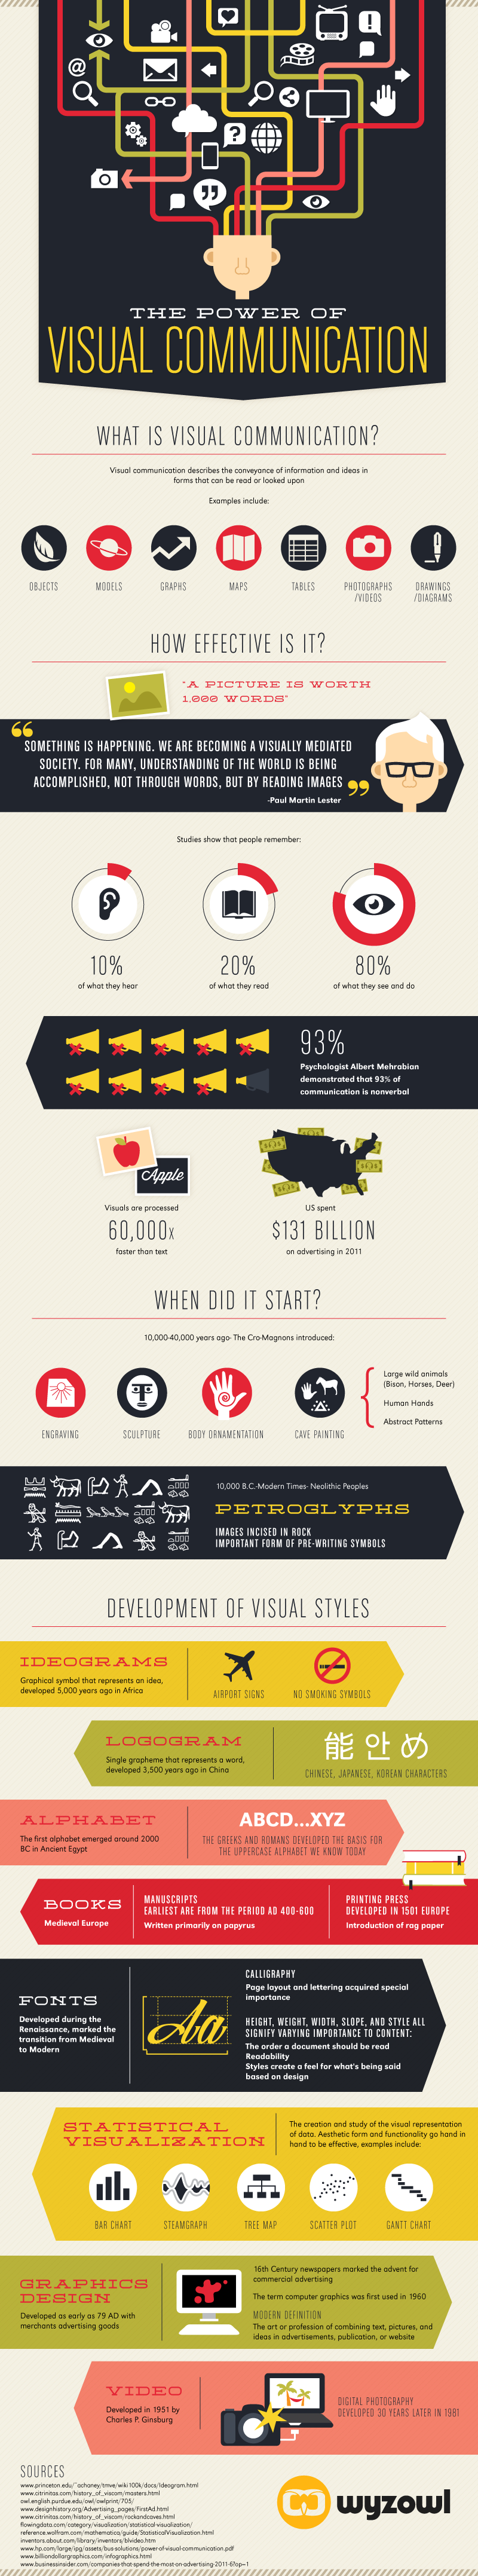 Infographic: The Power of Visual Communication